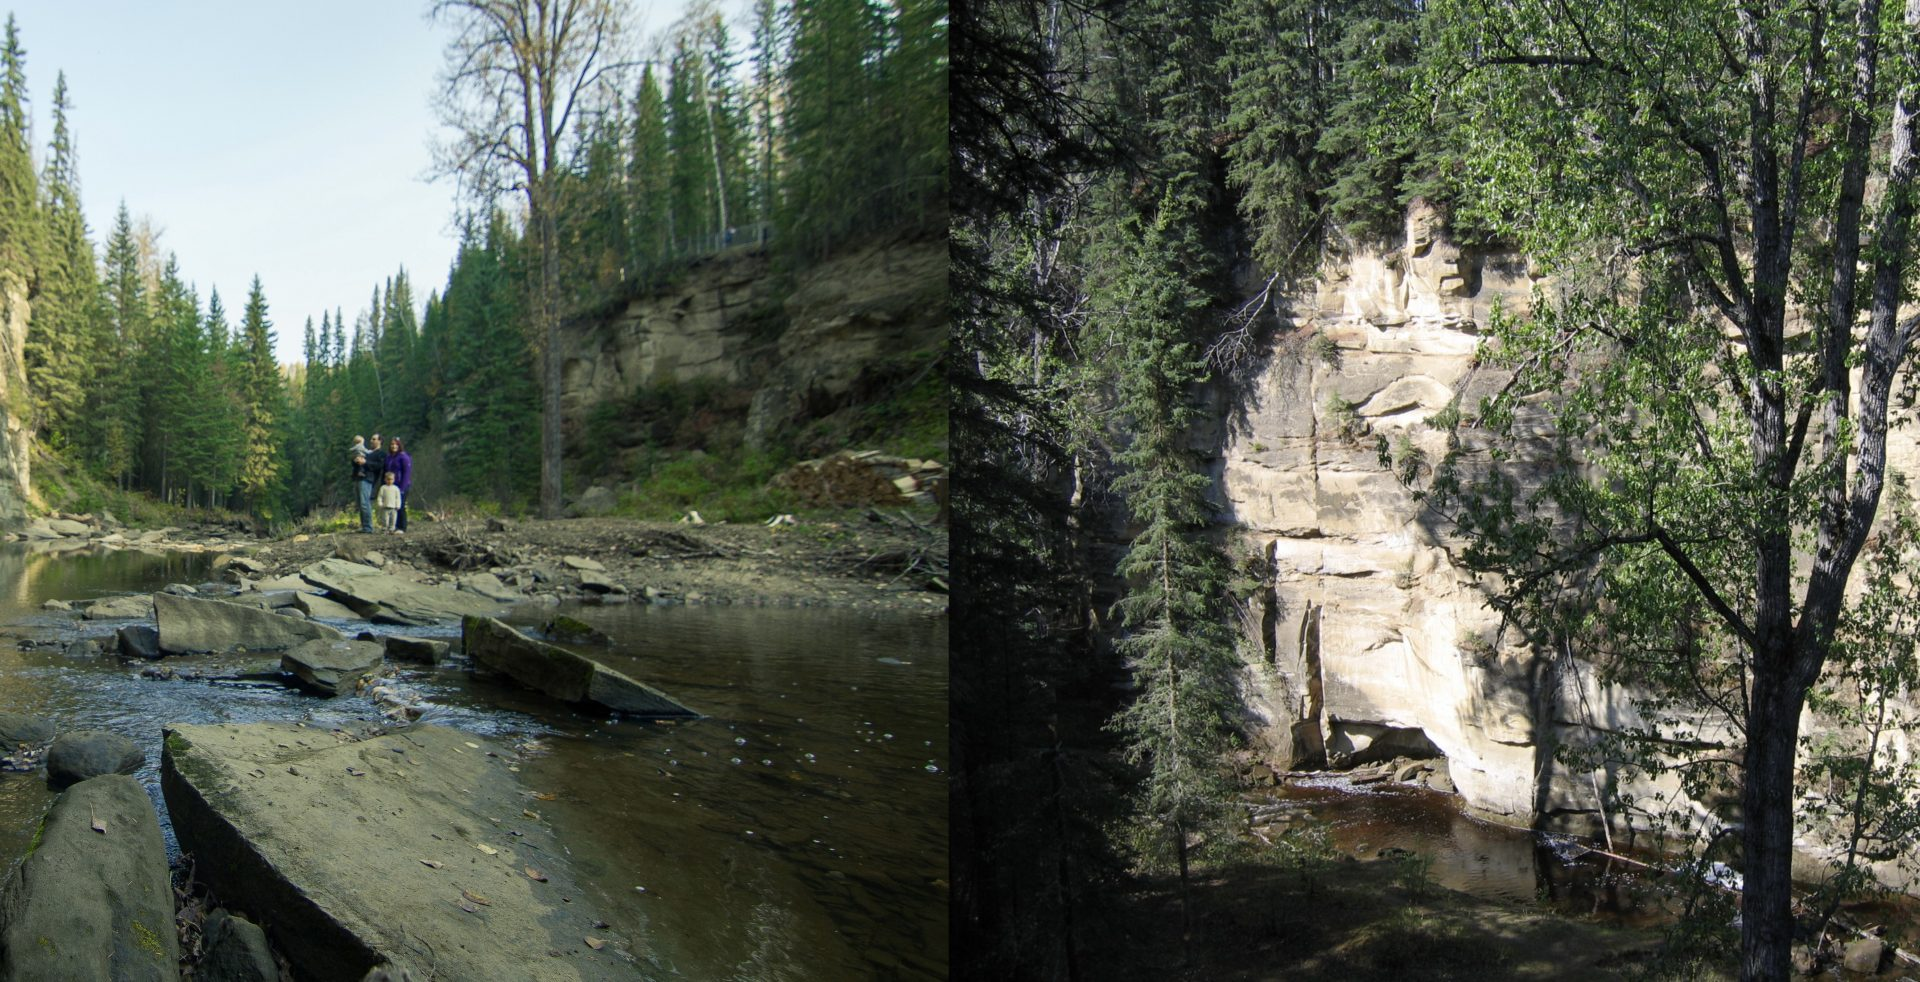 Whitecourt's Hard Luck Canyon is a must-visit just outside of Edmonton